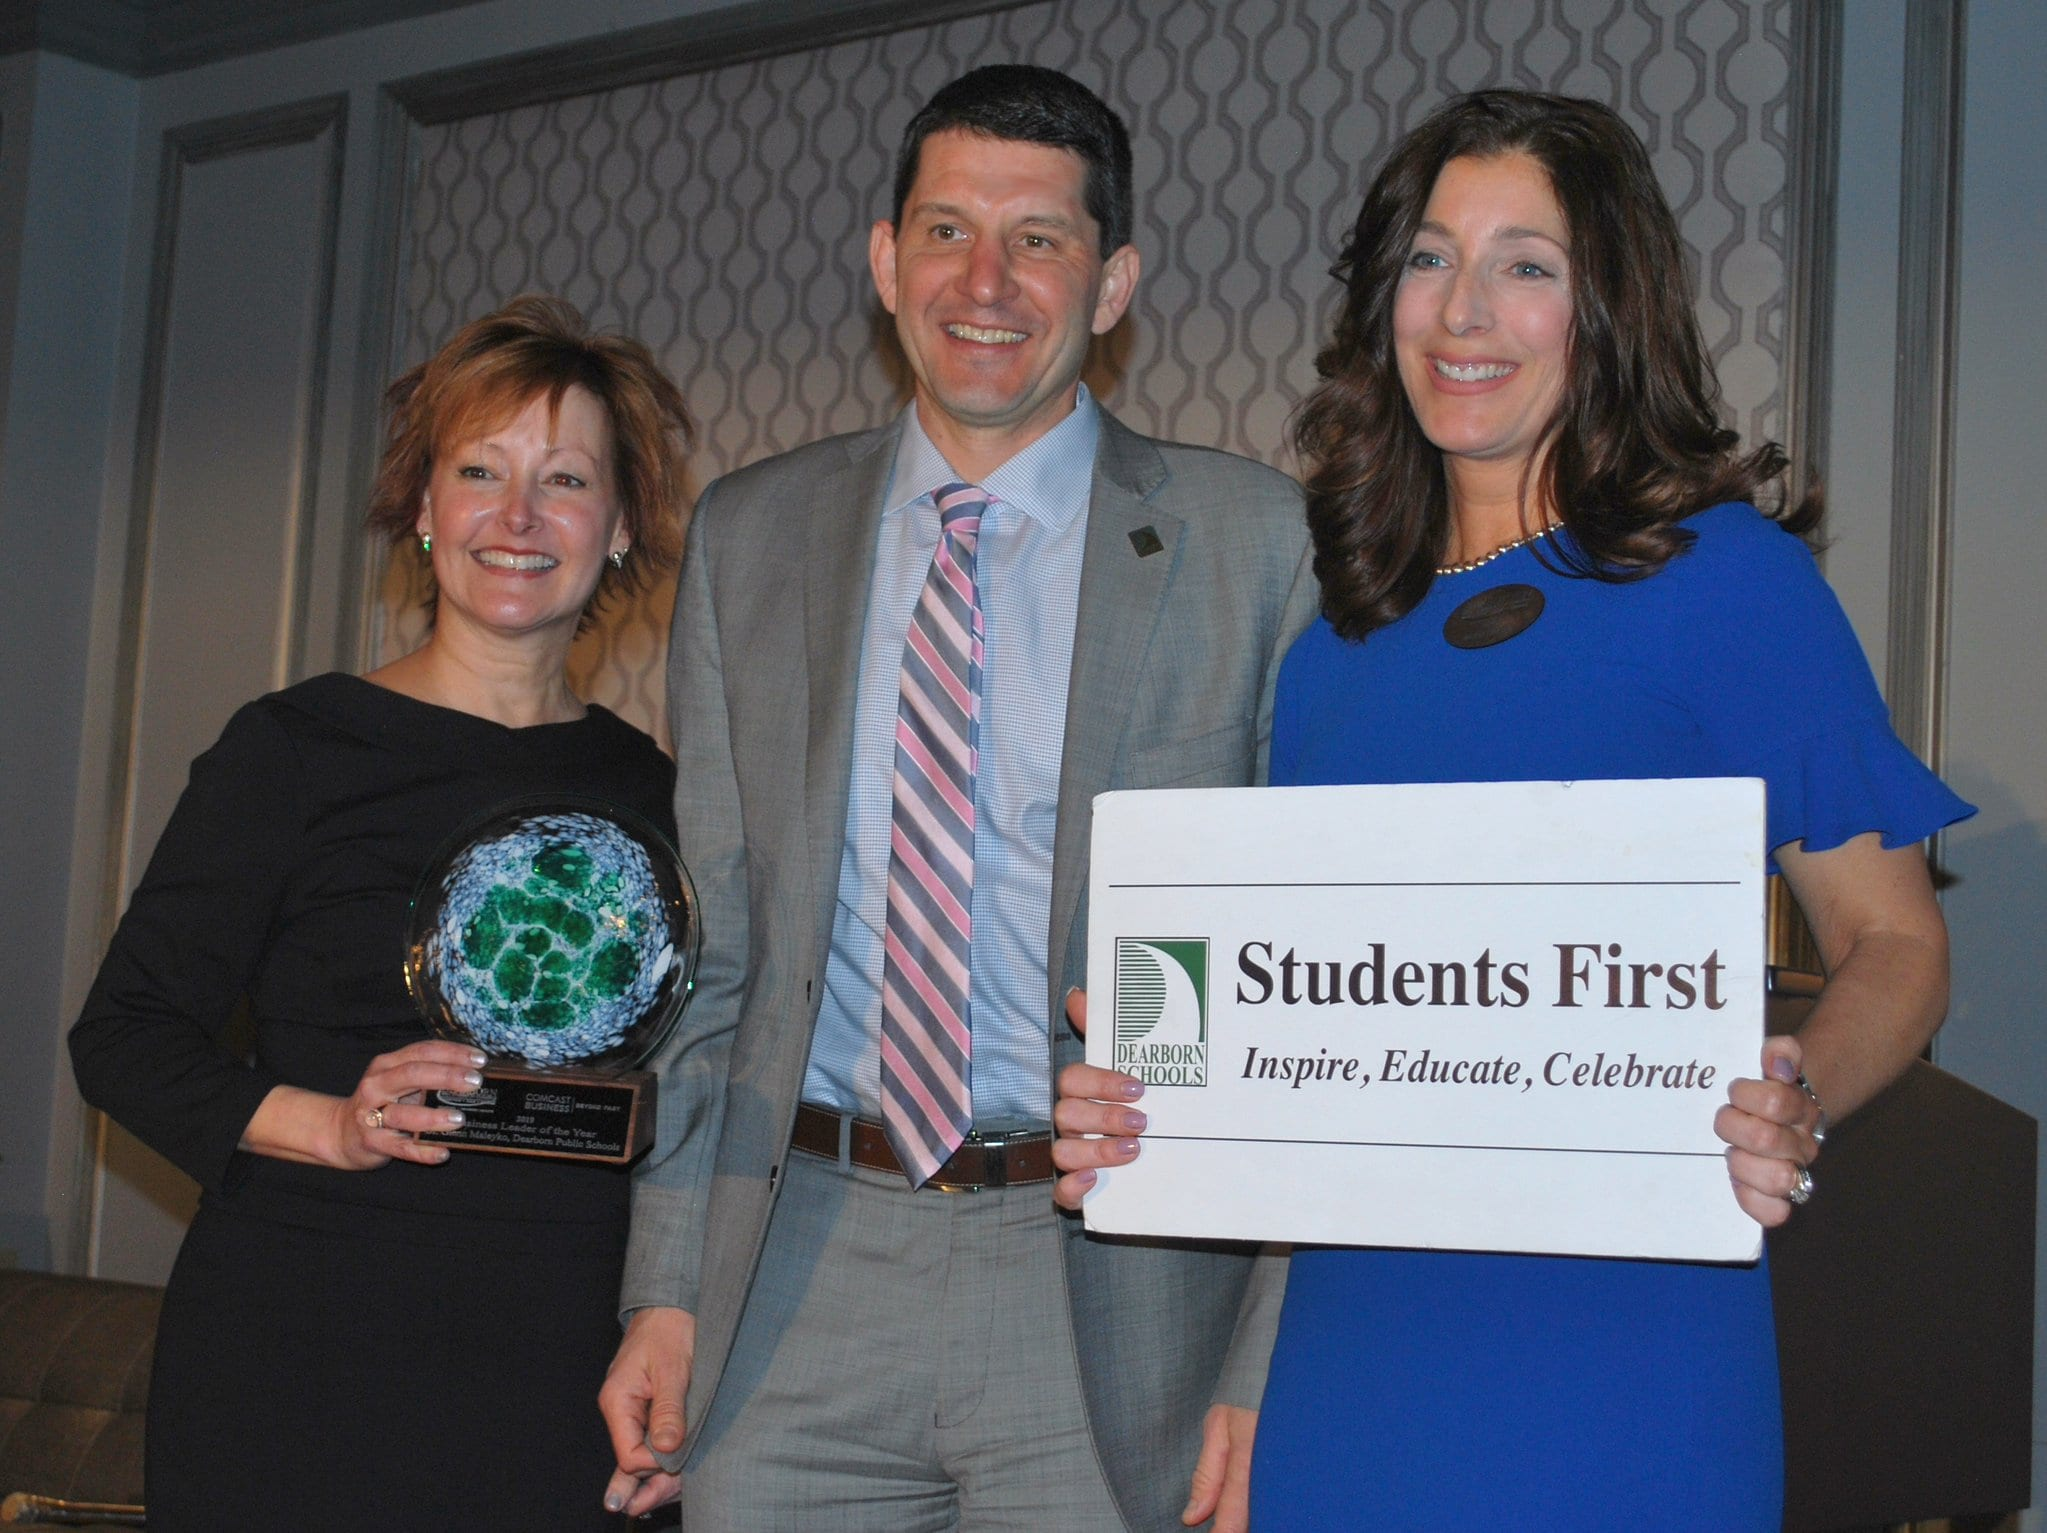 Chamber President Jackie Lovejoy, Dearborn Schools Superintendent Glenn Maleyko and Chamber Board of Directors Chair Maria Fracassa Dwyer pose with the Business Leader of the Year Award and Dearborn Schools Students First sign.